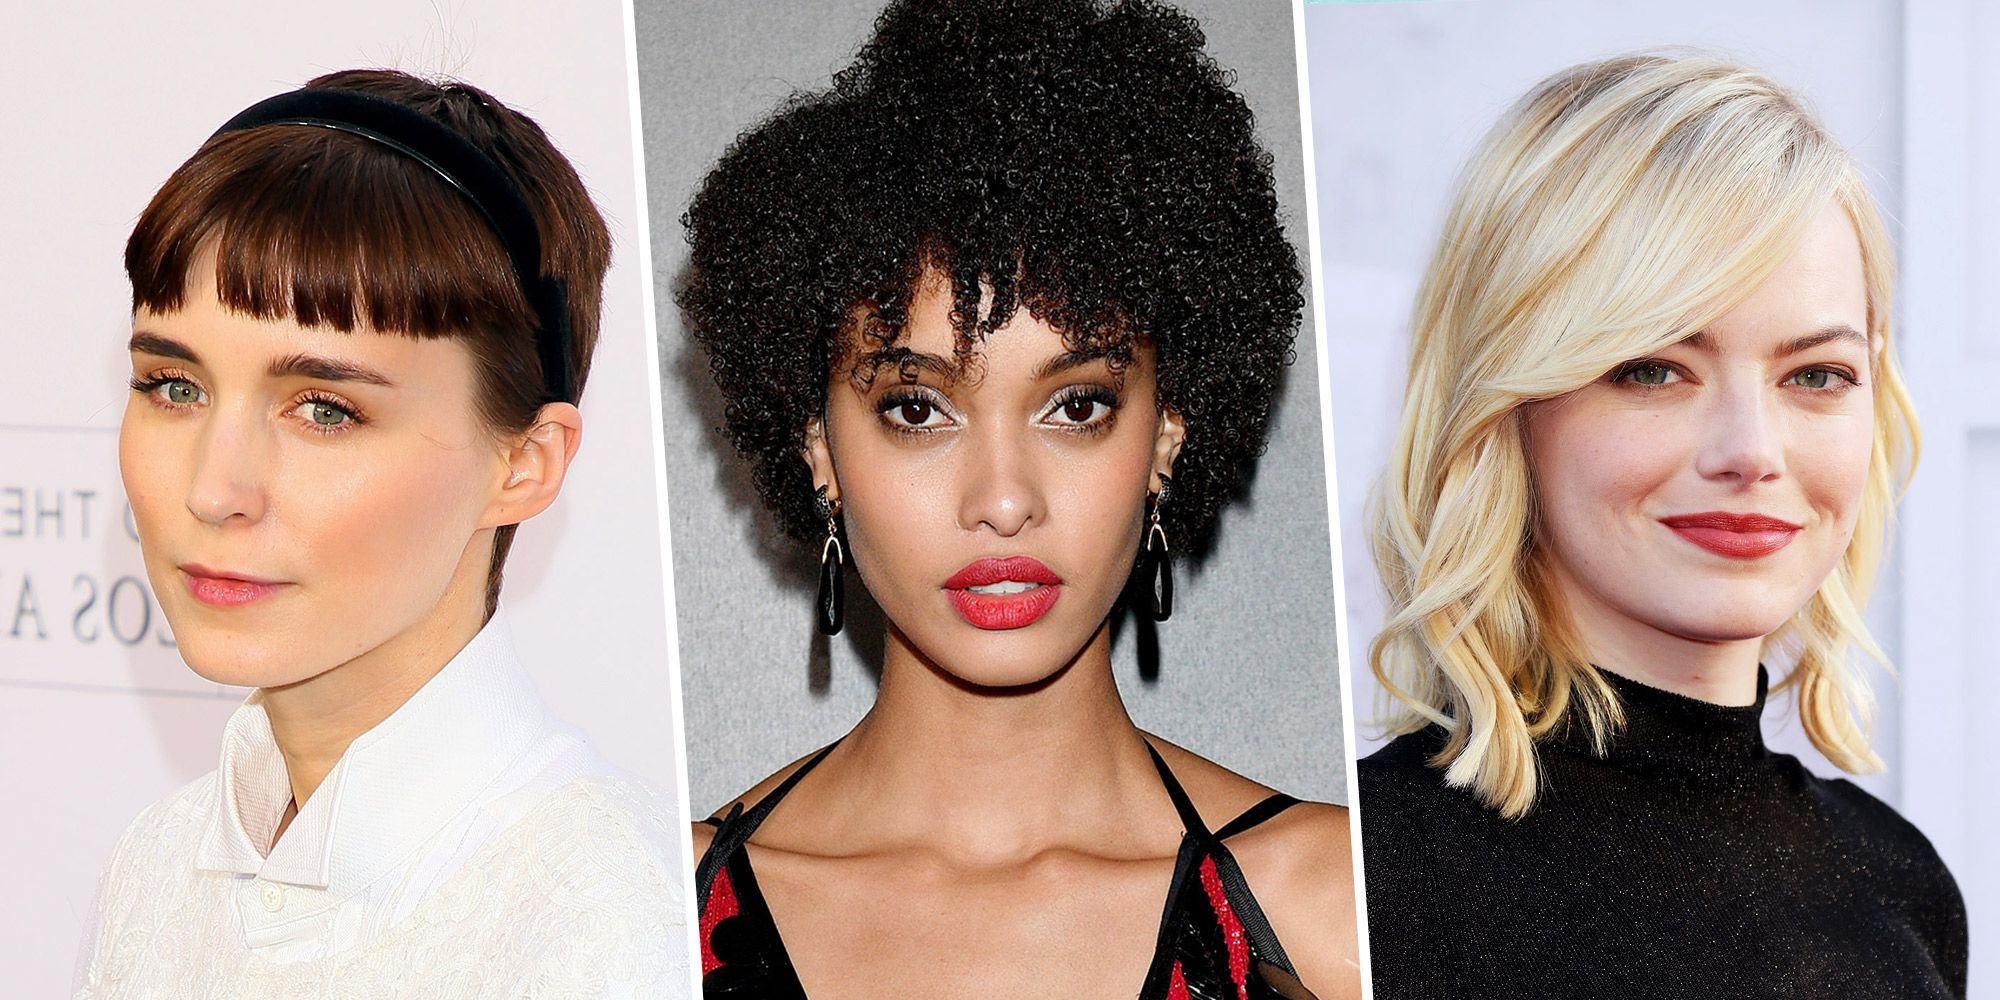 65 Best Short Hairstyles, Haircuts, And Short Hair Ideas For 2018 Intended For Summer Hairstyles For Short Hair (View 18 of 25)